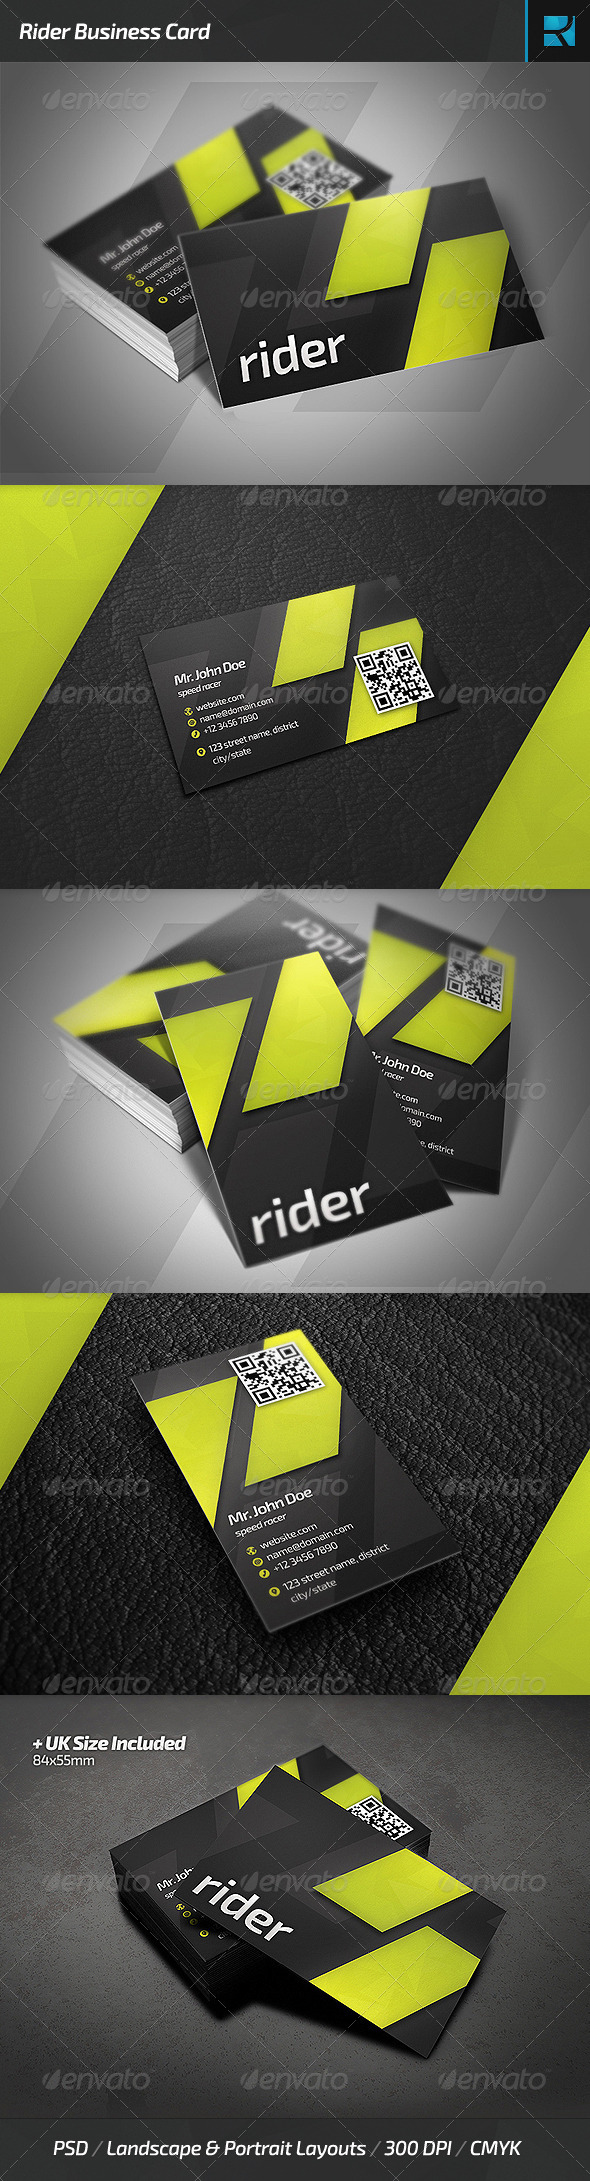 Rider Business Card - Corporate Business Cards